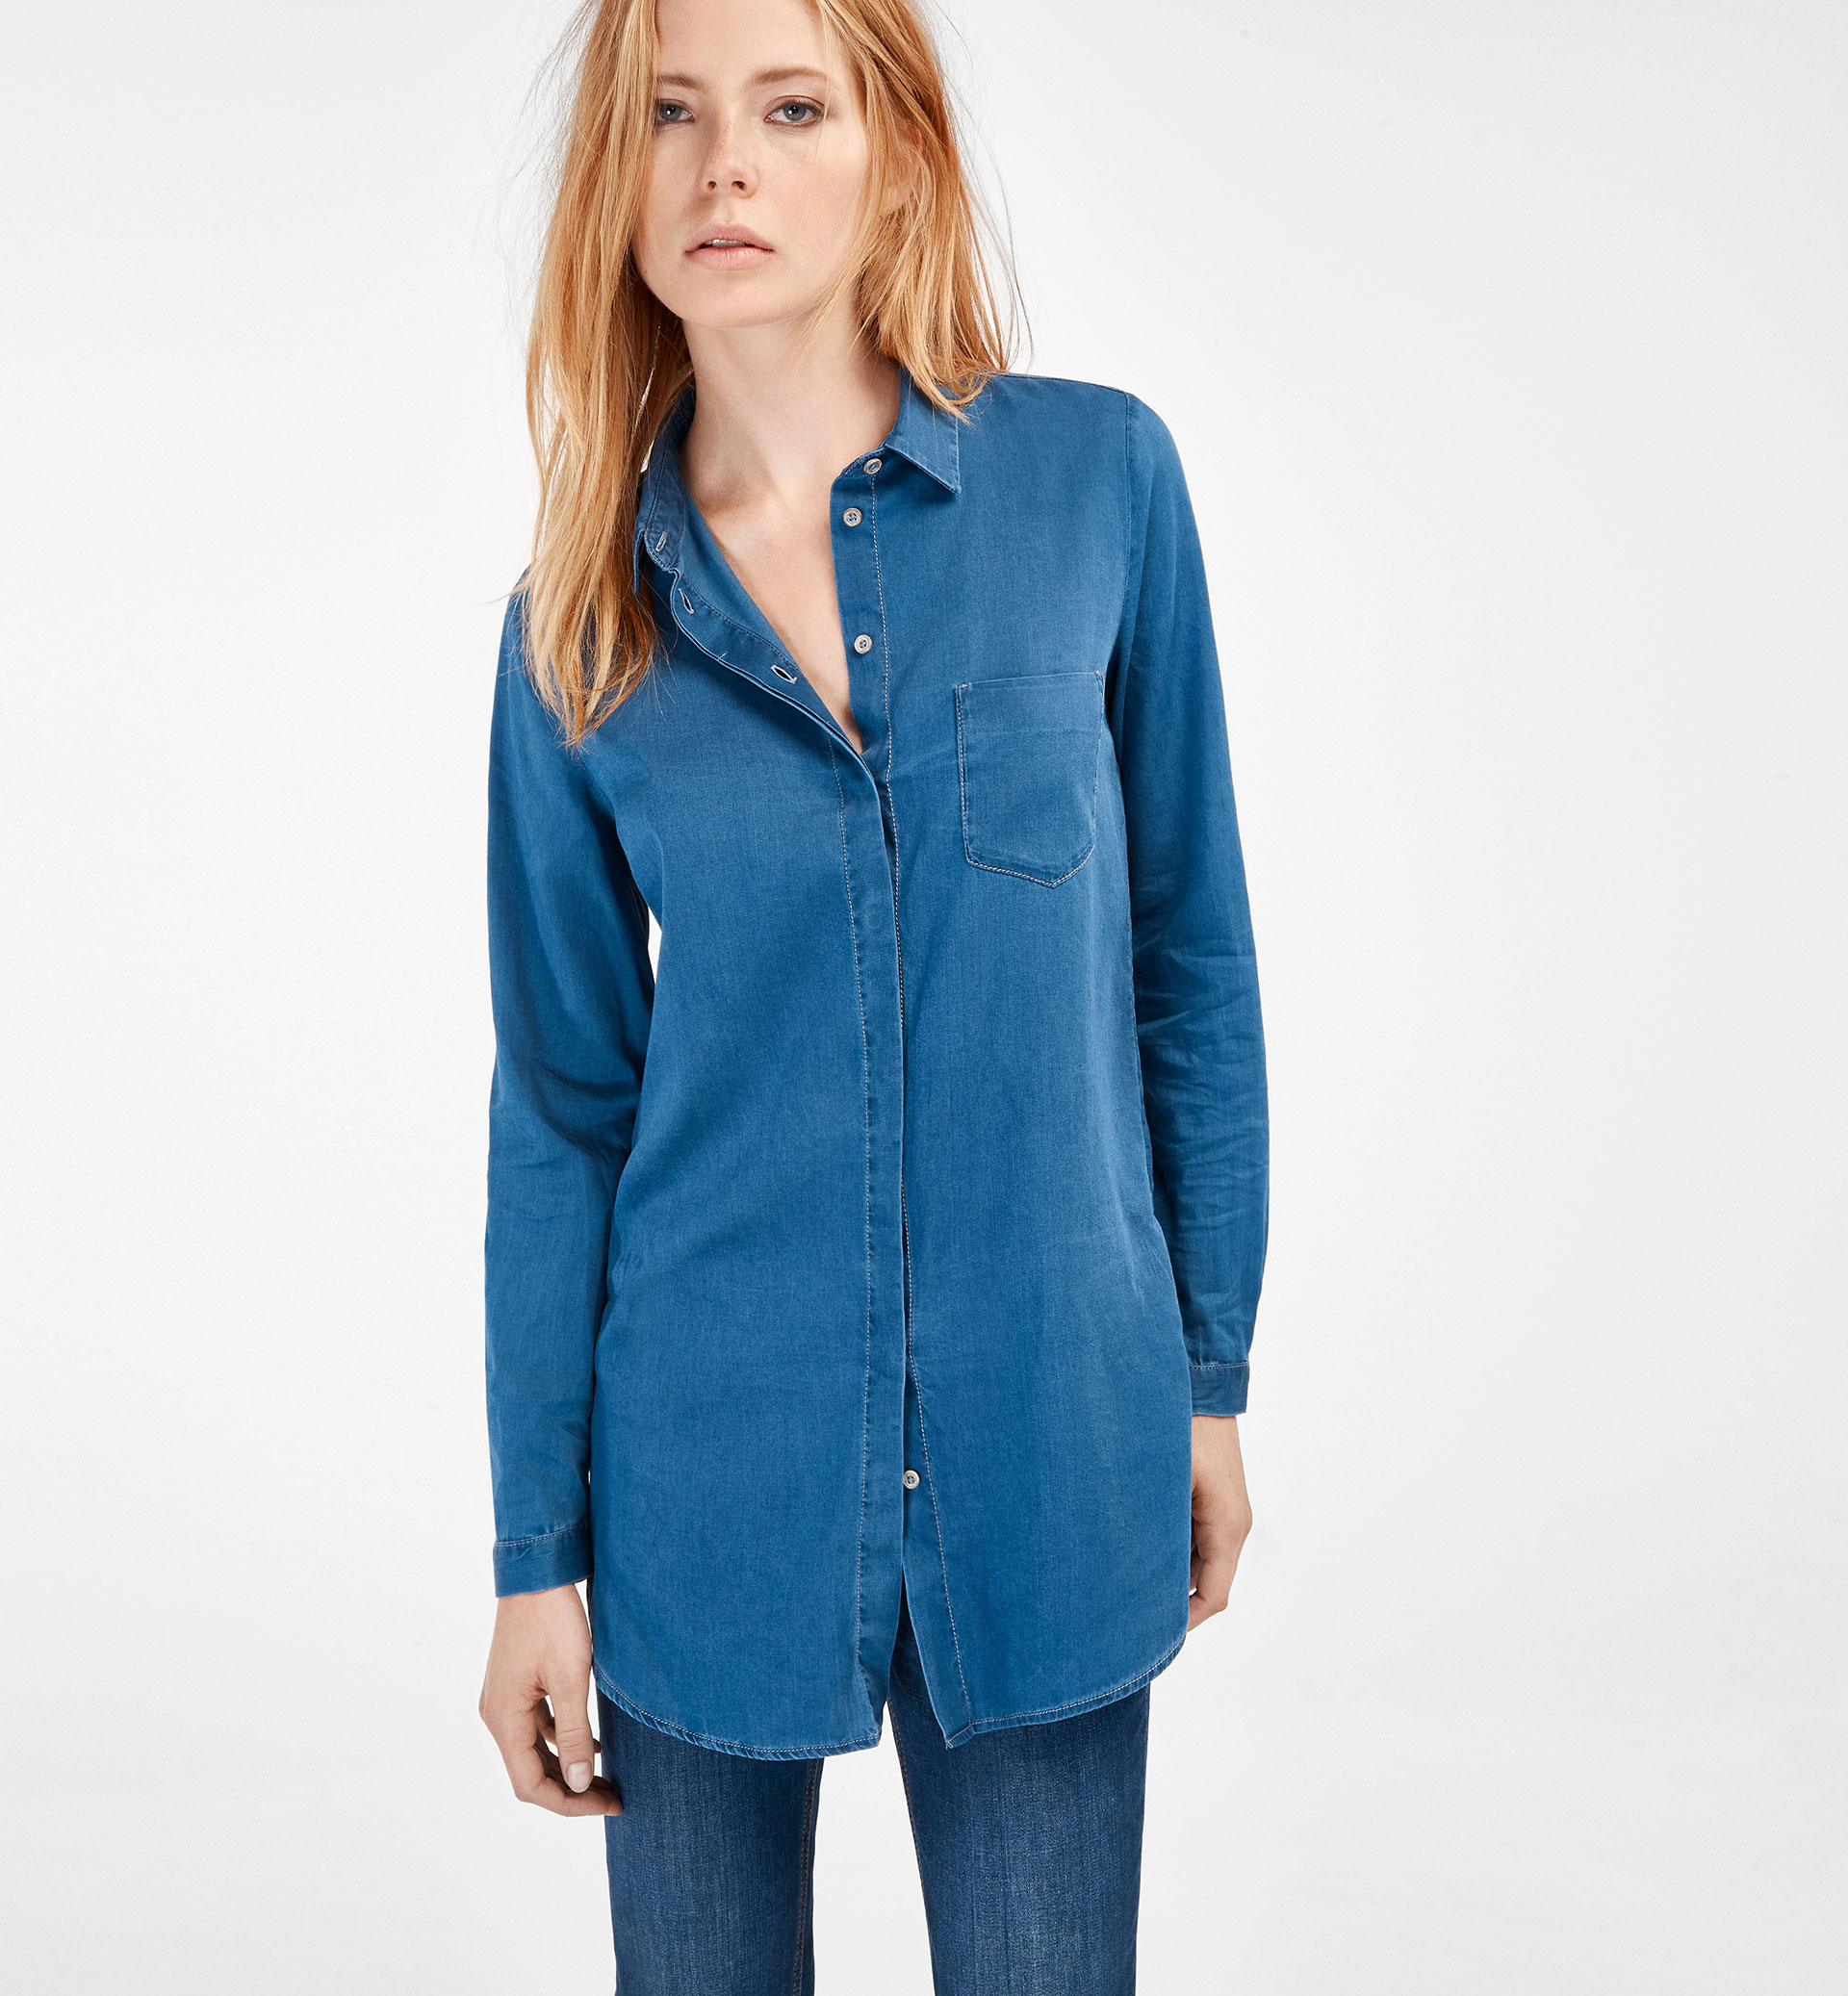 OVERSIZED INDIGO BLOUSE